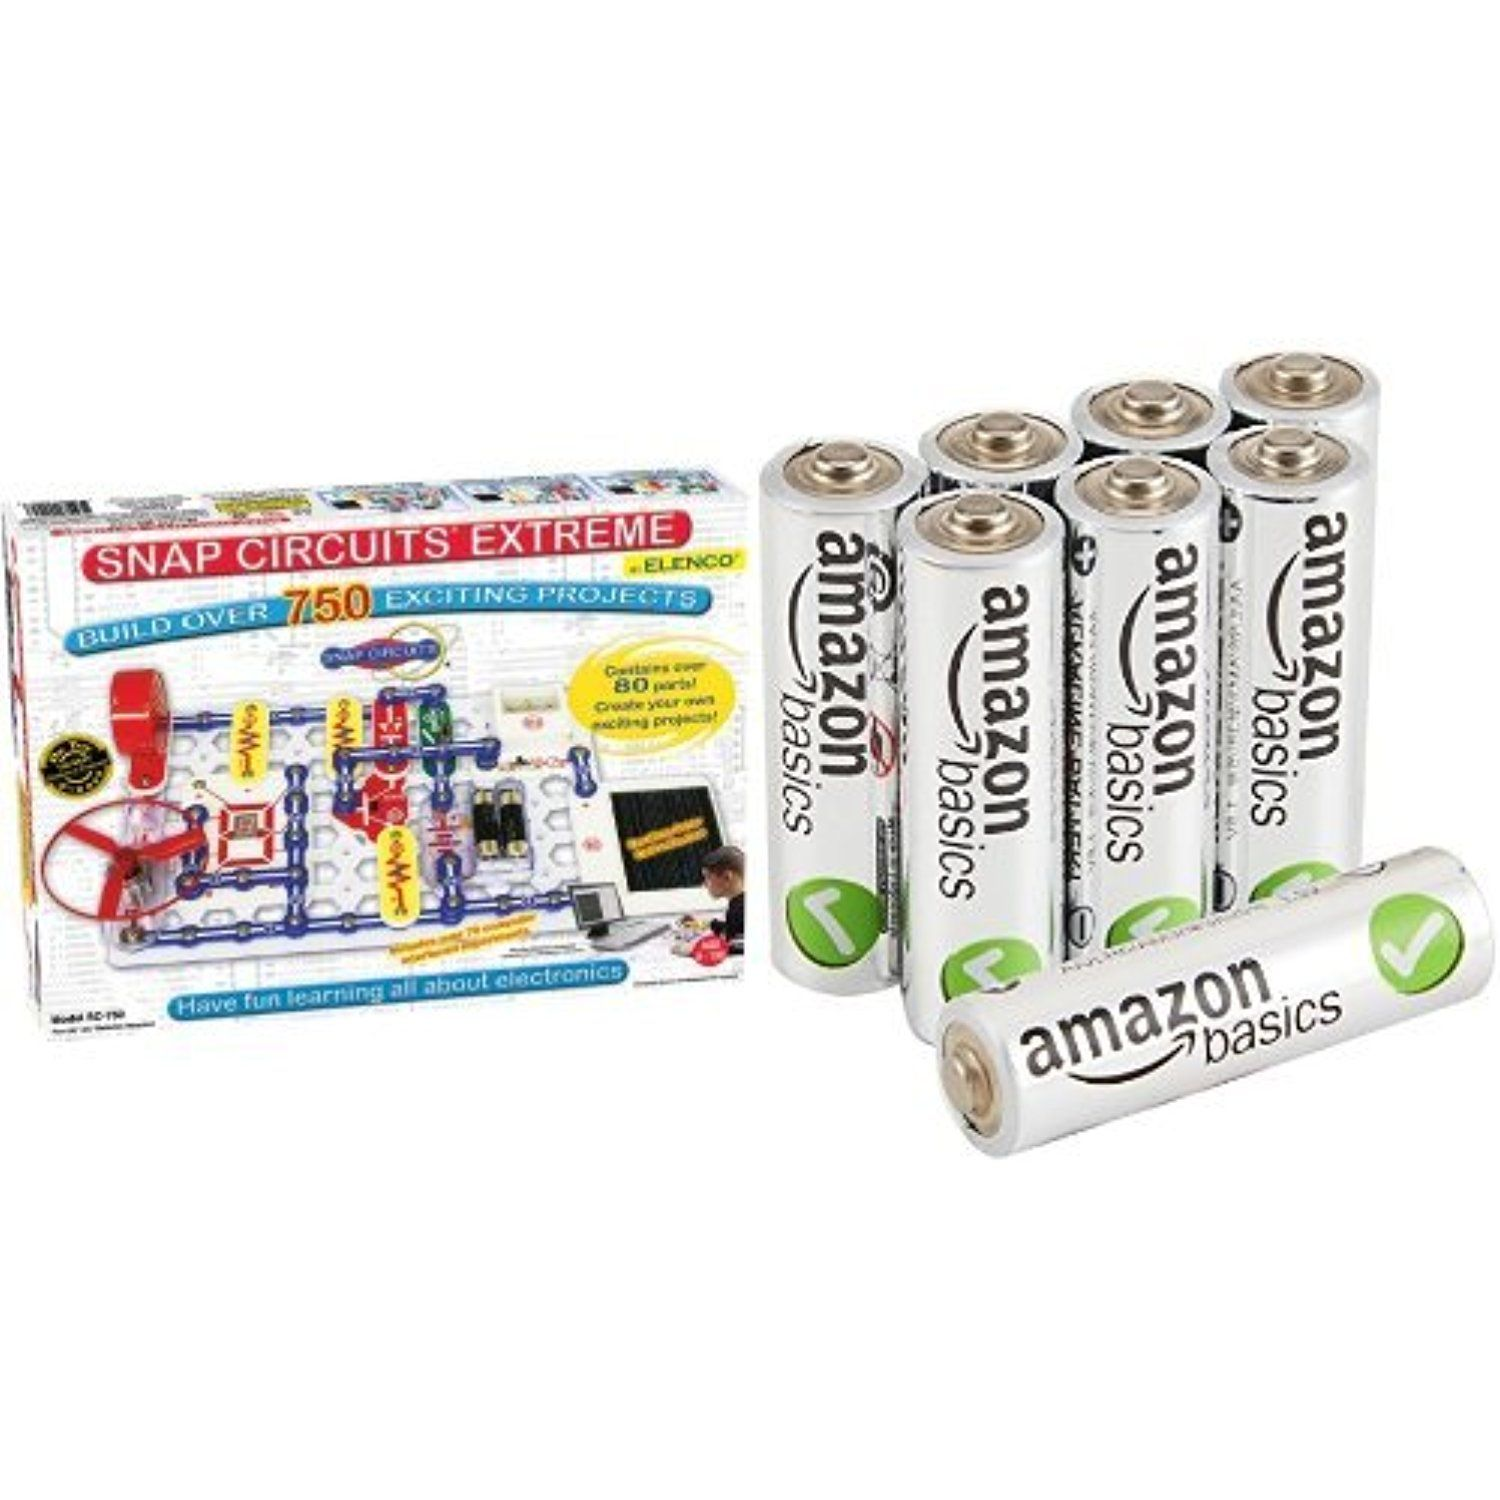 Snap Circuits Extreme Sc 750 Electronics Discovery Kit In Standard Circuit Packaging With Amazonbasics Aa Batteries